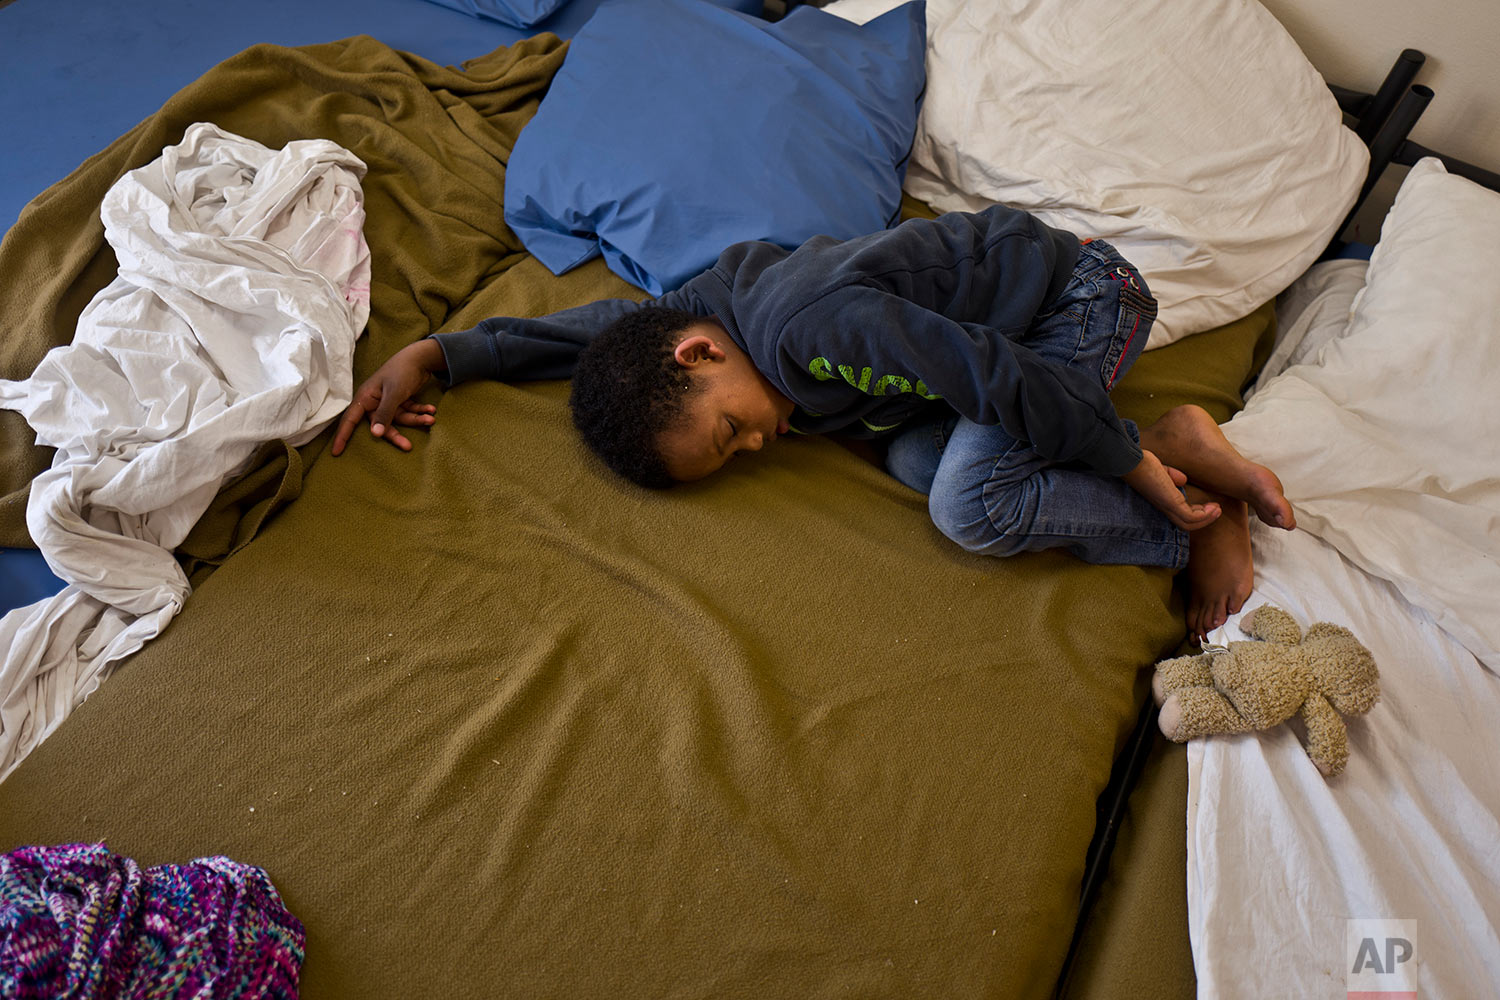 In this Friday, July 7, 2017 photo, Eritrean migrant Solomun Drat, 7, sleeps on a bed at his family's room in the former prison of Bijlmerbajes in Amsterdam, Netherlands. (AP Photo/Muhammed Muheisen)